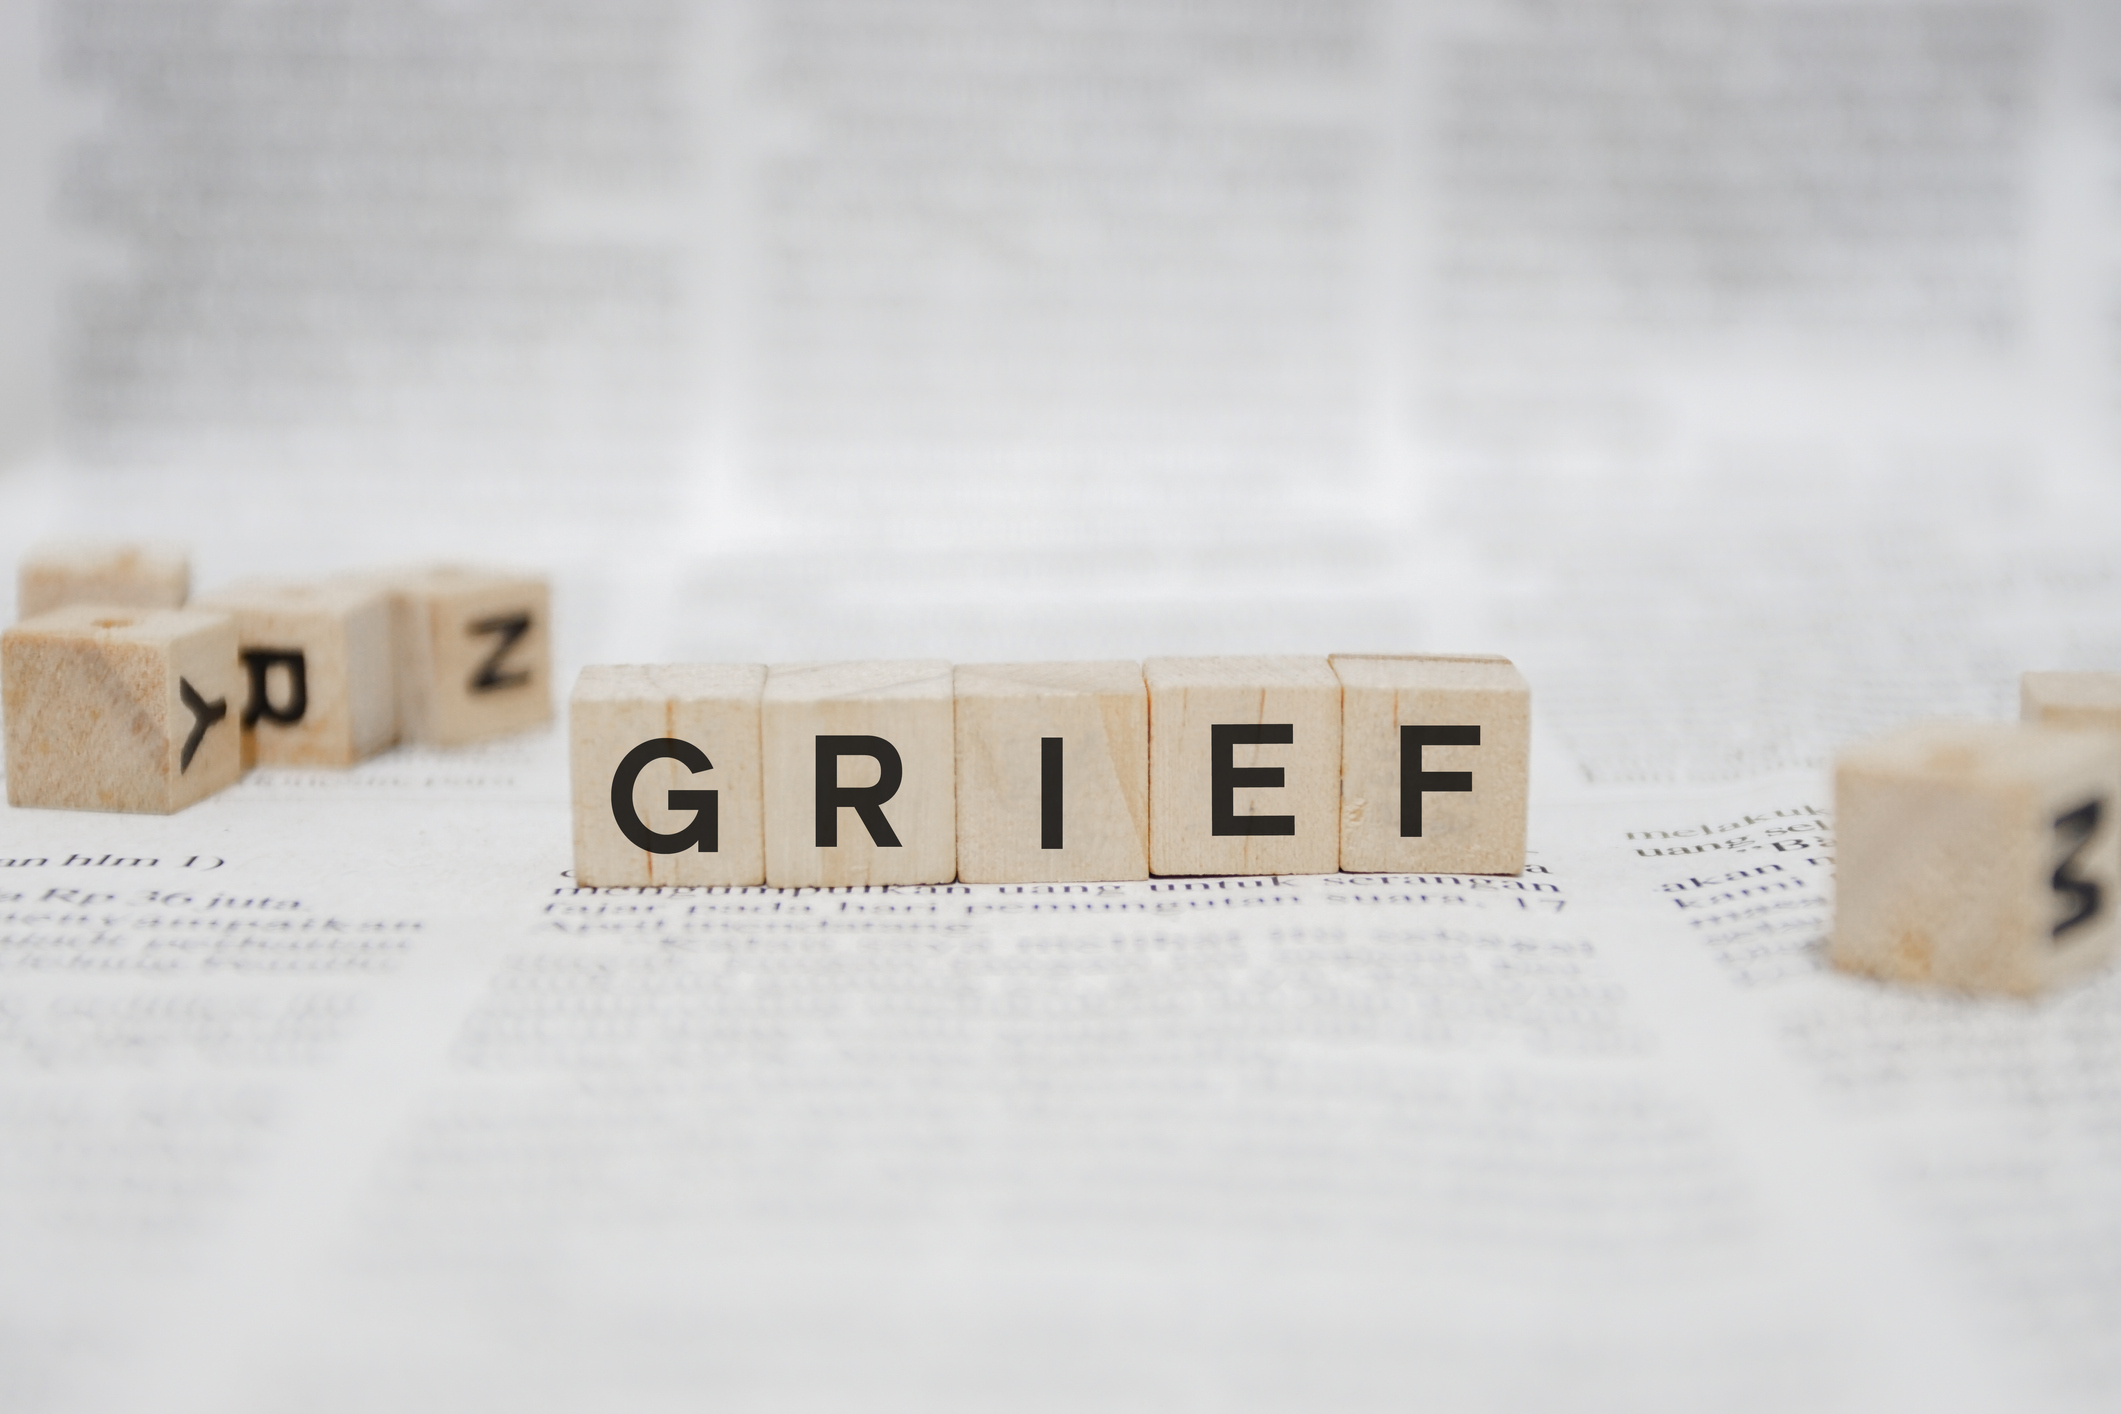 Grief-blocks-newspaper